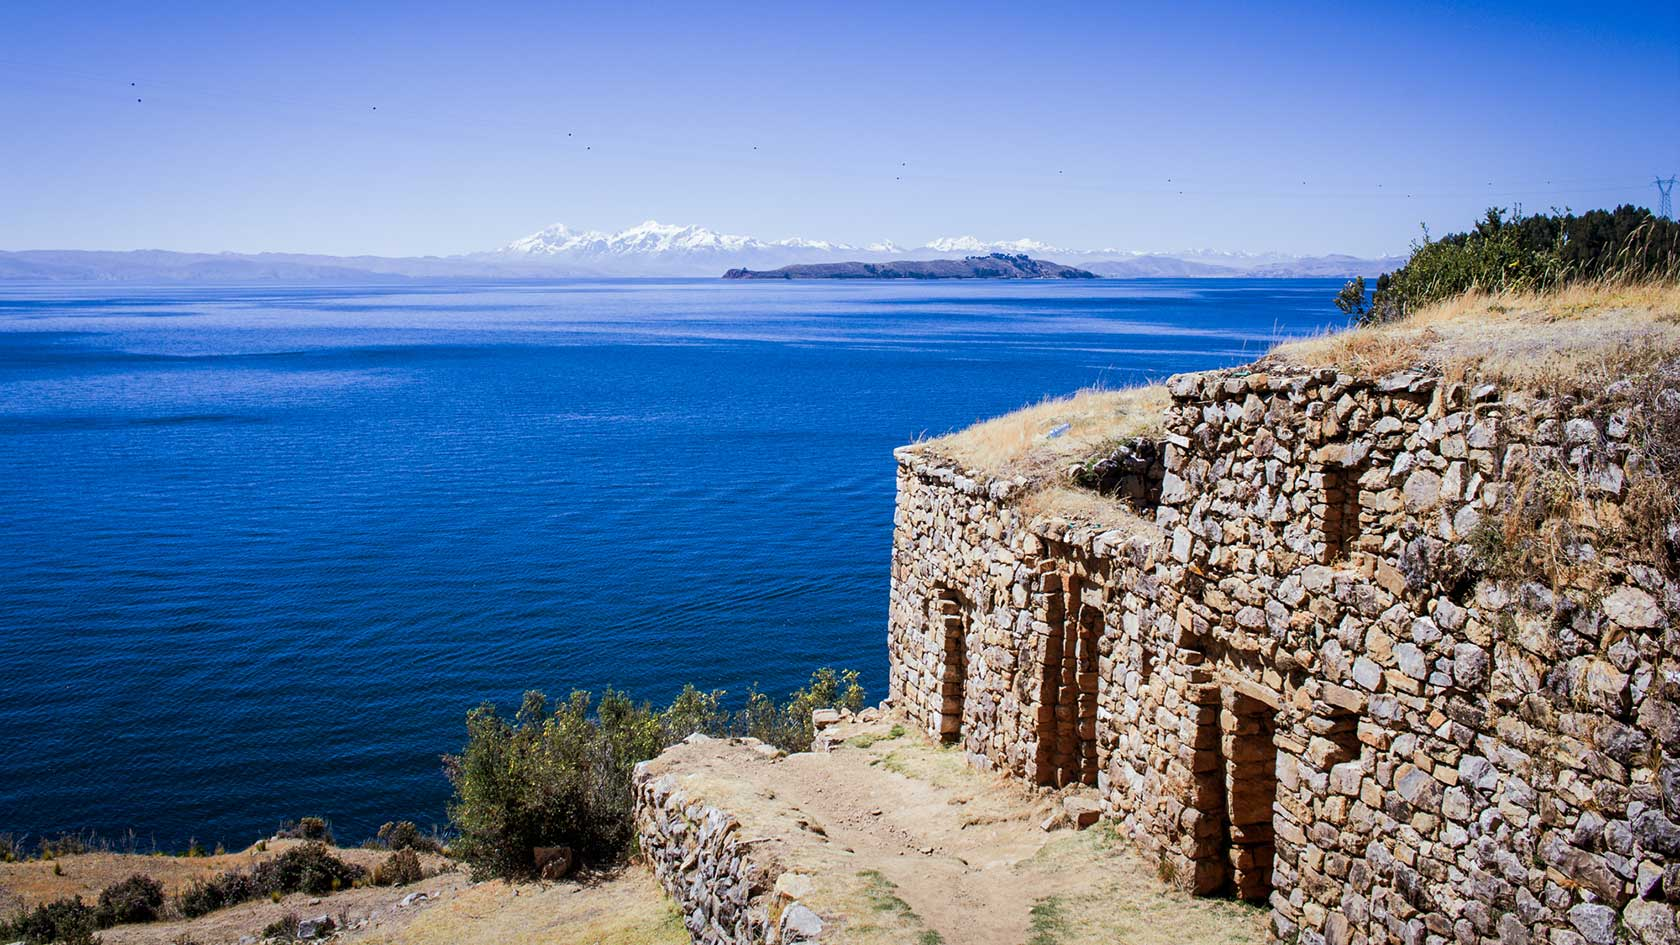 Fortress on the Сoast in Bolivia 109.21 Kb